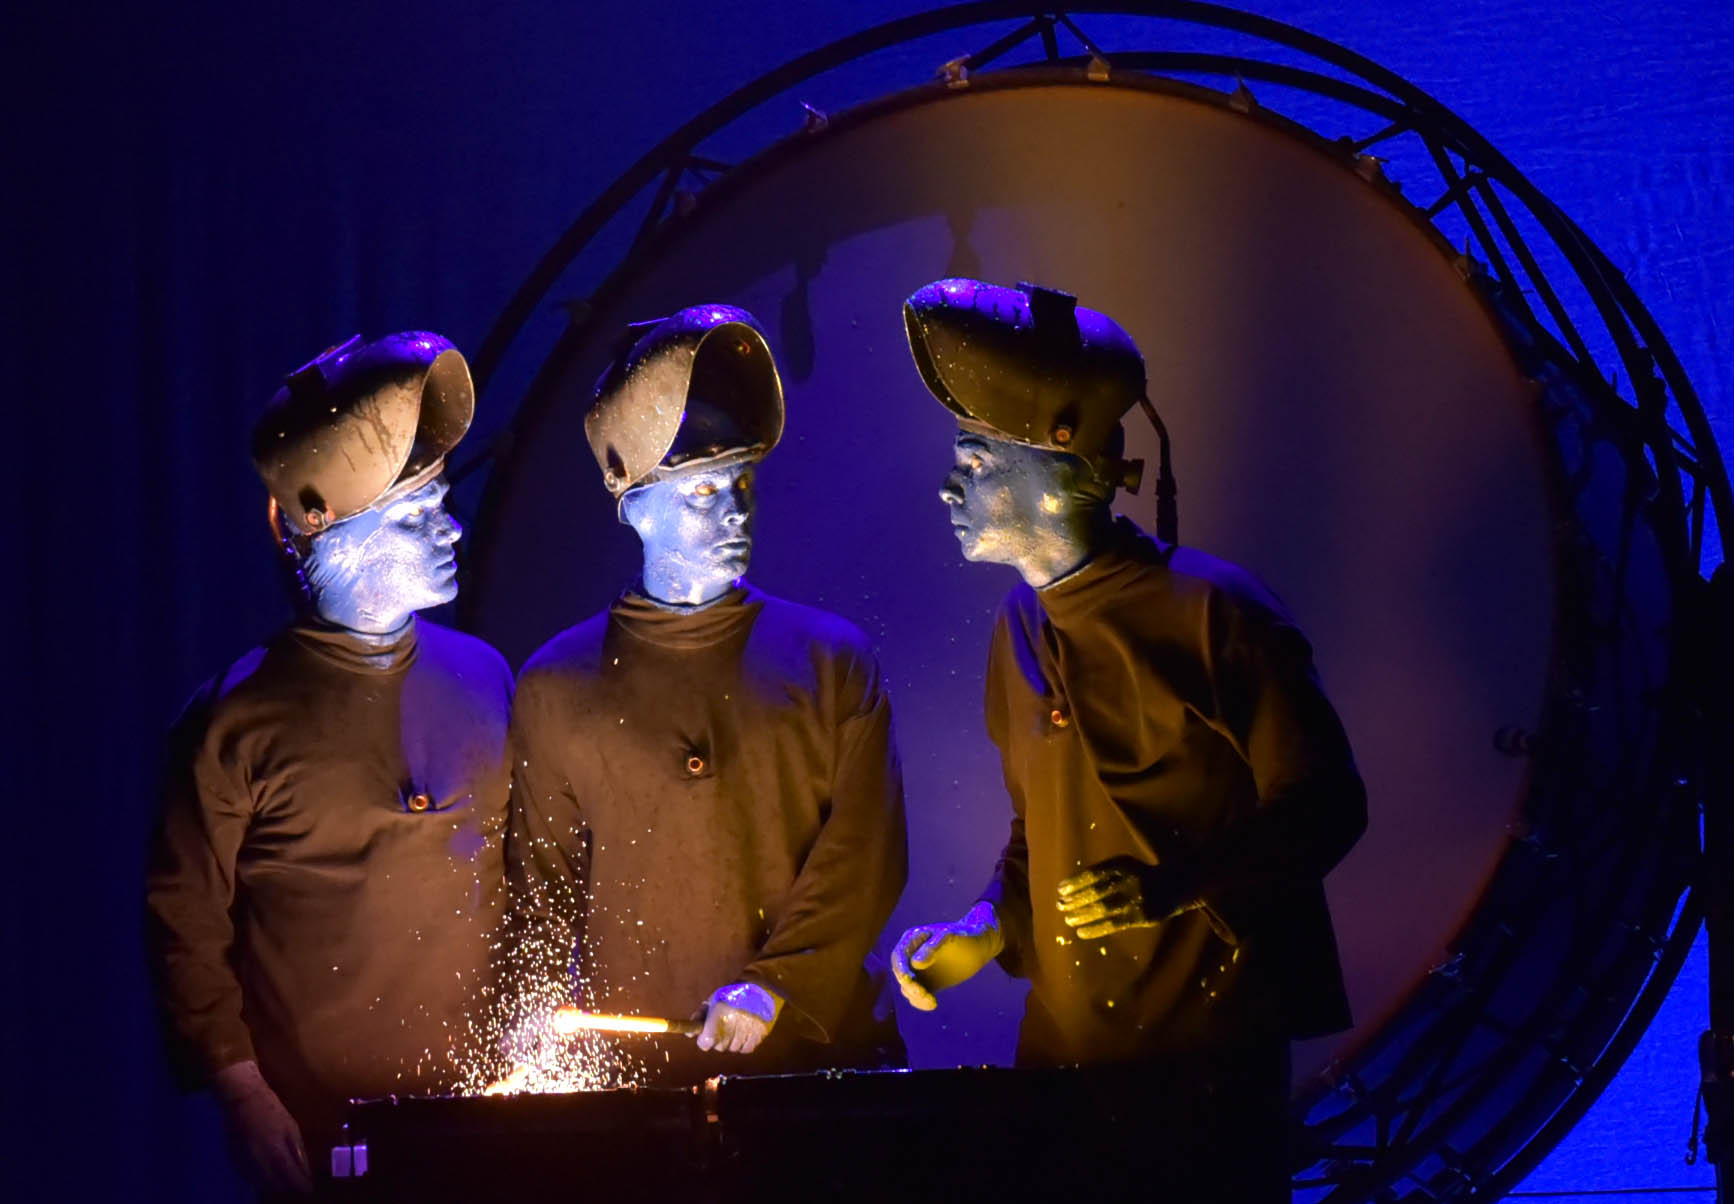 Comedy, theatre, rock concert and dance party  group known as Blue Man Group performs at Monte Casino in Johannesburg, 7 February 2017. The concert runs from Tuesday 7 February 2017 to Sunday, 5 March 2017. Tickects are selling from R370 to R680 at Computickect. The acclaimed stage show, best known and recognised for its trio of bald and blue performers. Approaching its 25th year of creativity, this artistic group is continually updating and refreshing Blue Man shows with new music, fresh stories, custom instruments and state of the art technology. Picture: Nigel Sibanda